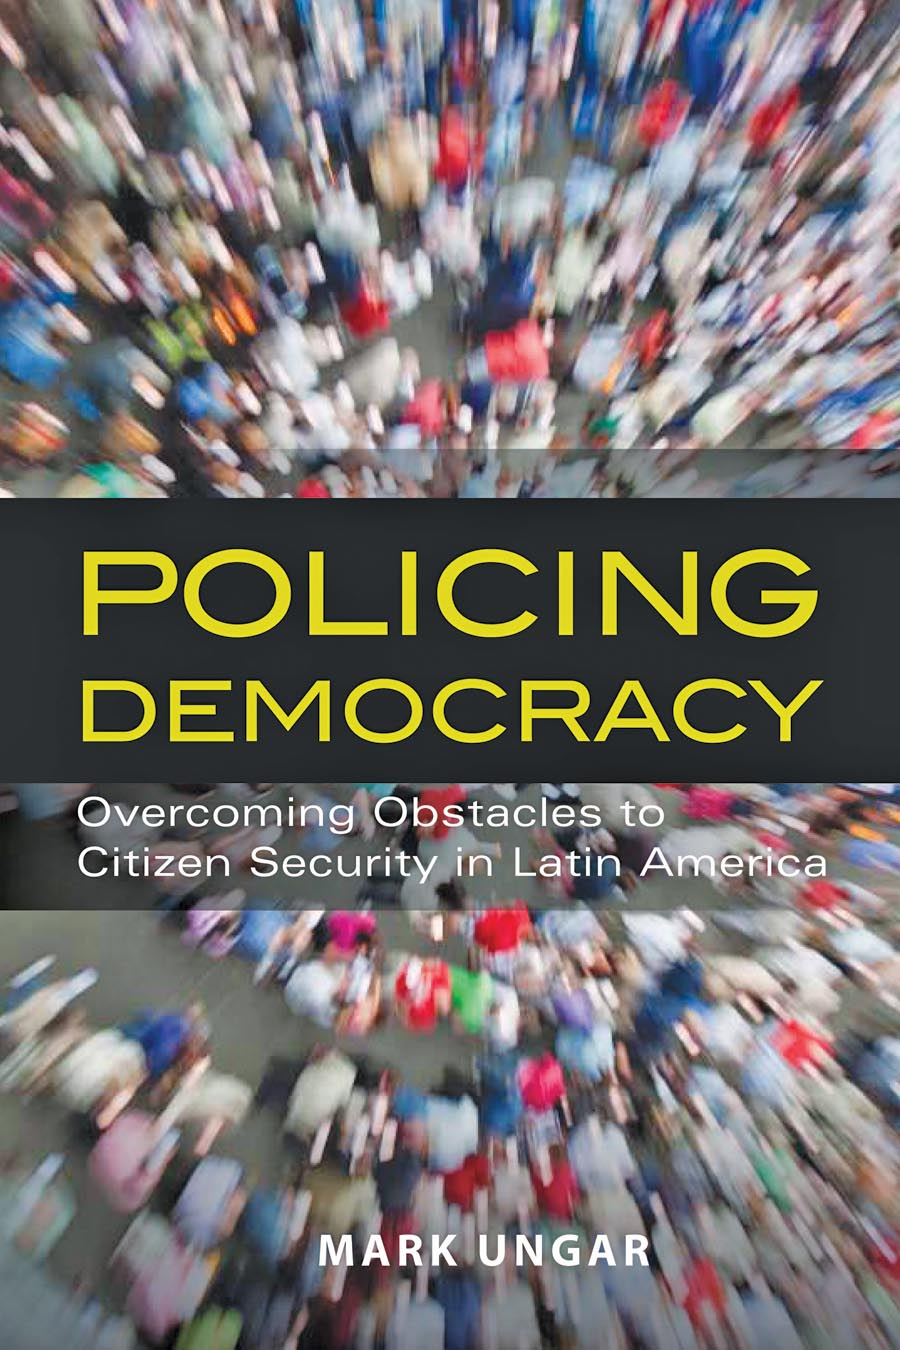 Policing Democracy – Overcoming Obstacles to Citizen Security in Latin America democracy in america nce